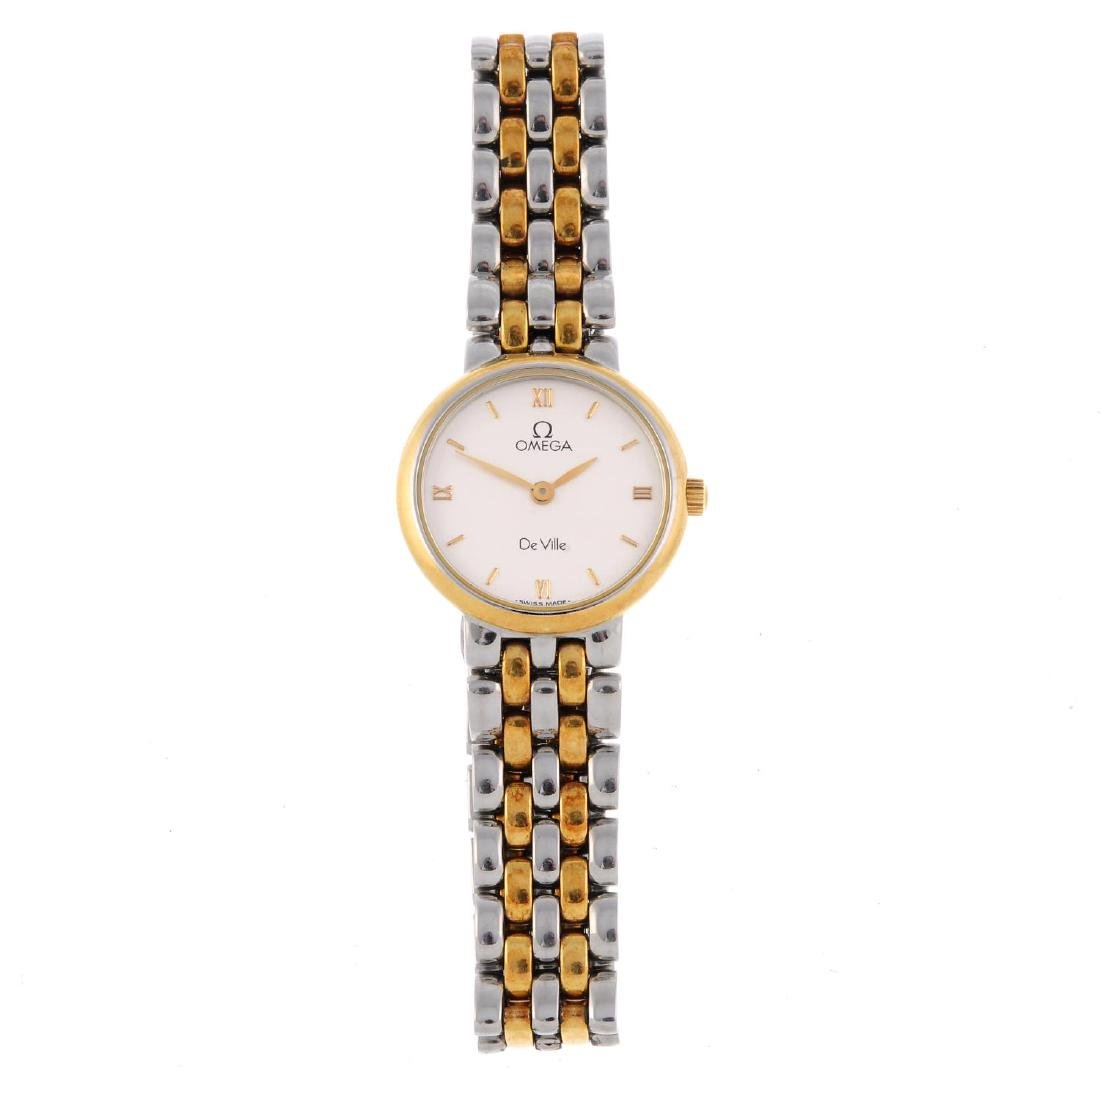 OMEGA - a lady's De Ville bracelet watch. Bi-colour